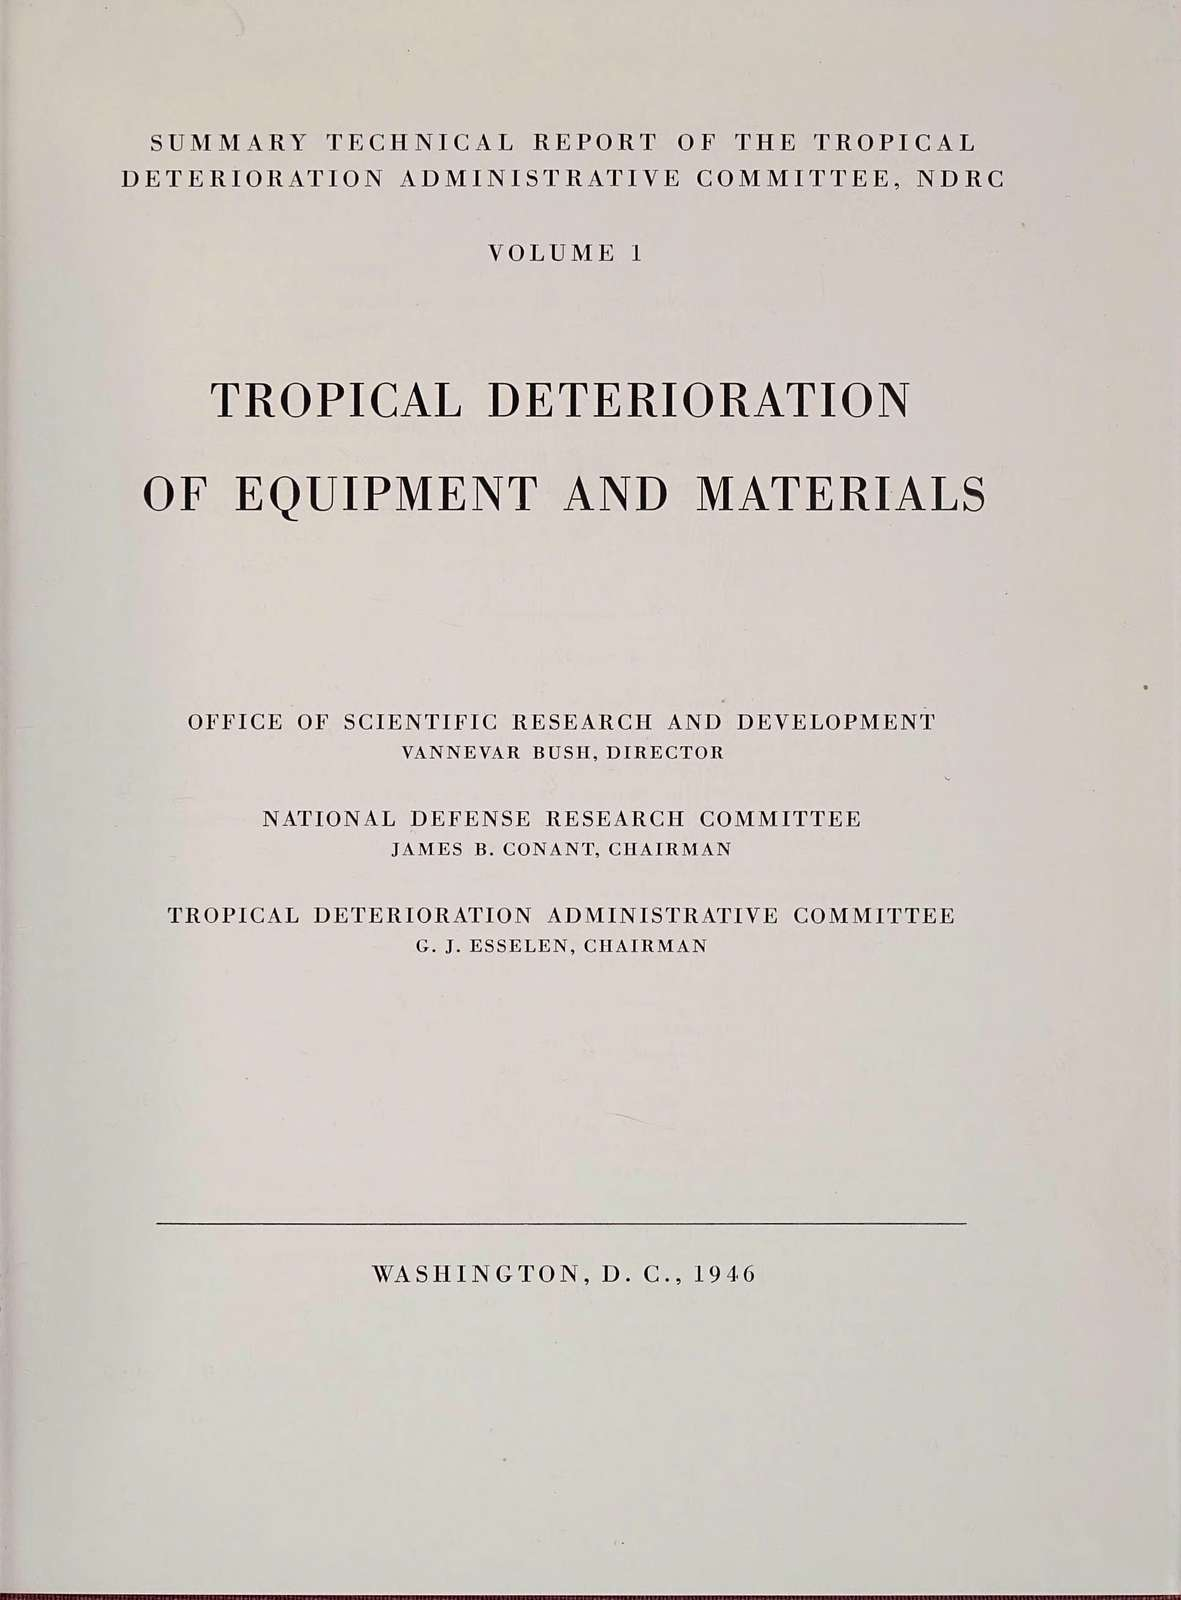 Tropical deterioration of equipment and materials